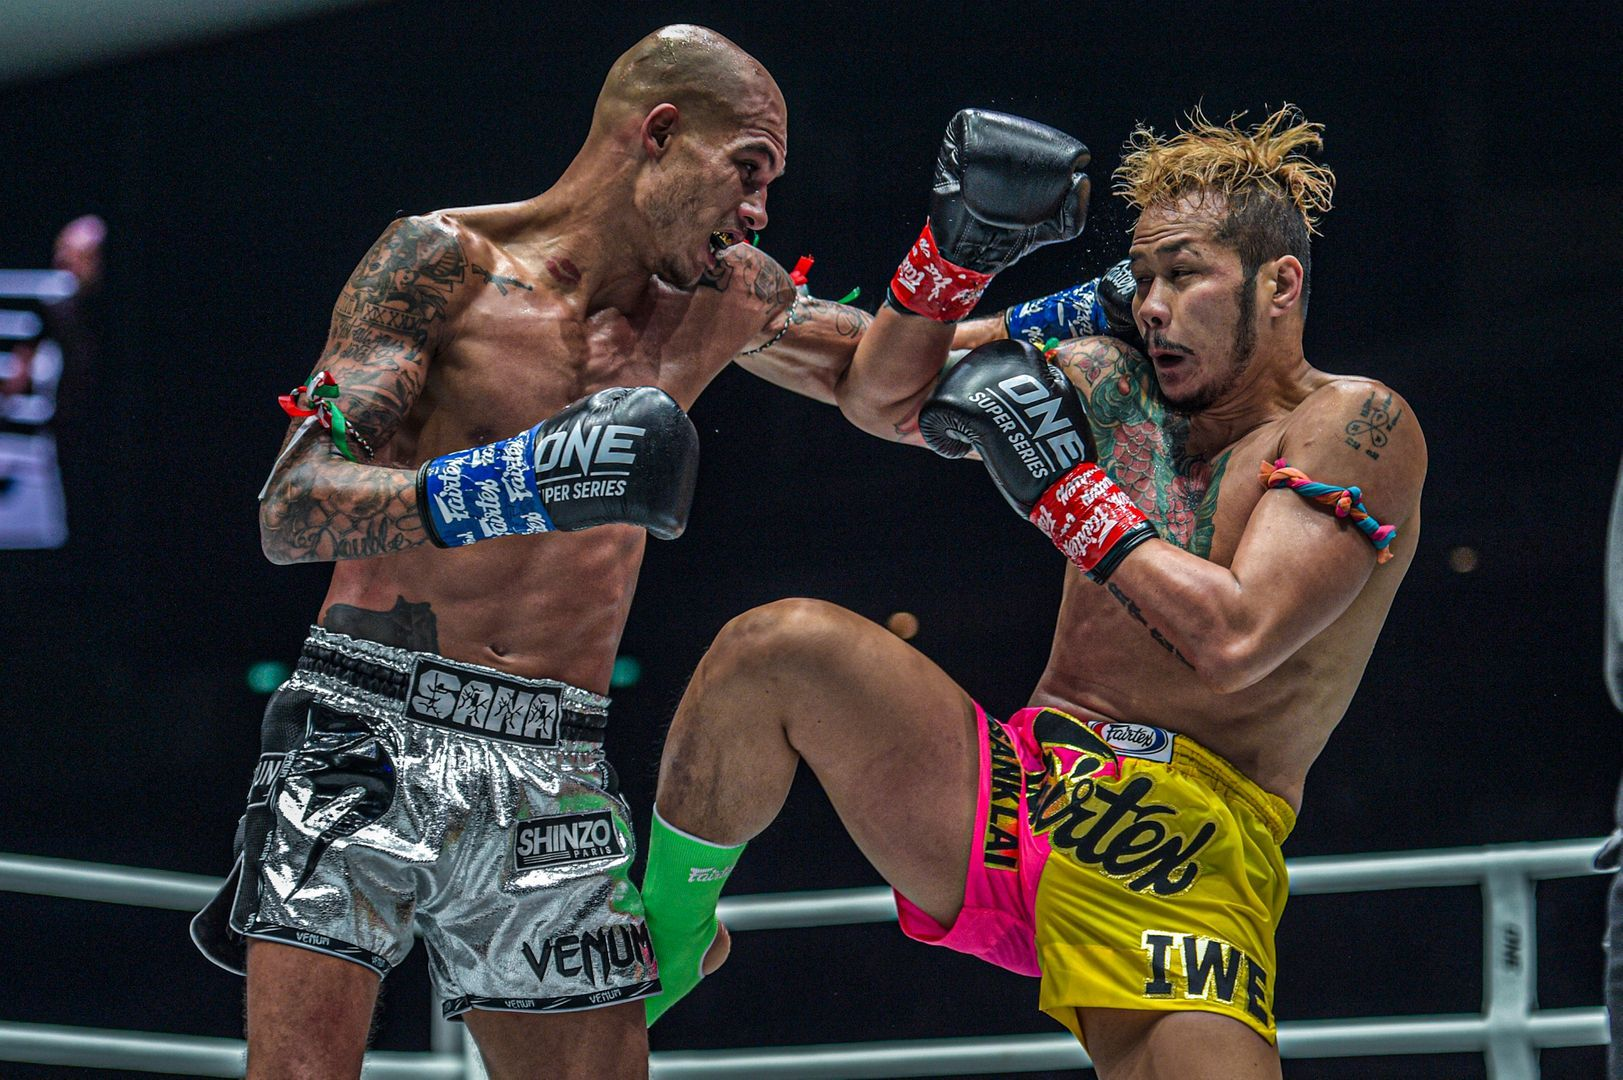 Samy Sana defeats Yodsanklai IWE Fairtex by unanimous decision at ONE: ENTER THE DRAGON in the ONE Super Series Featherweight Kickboxing World Grand Prix quarterfinals